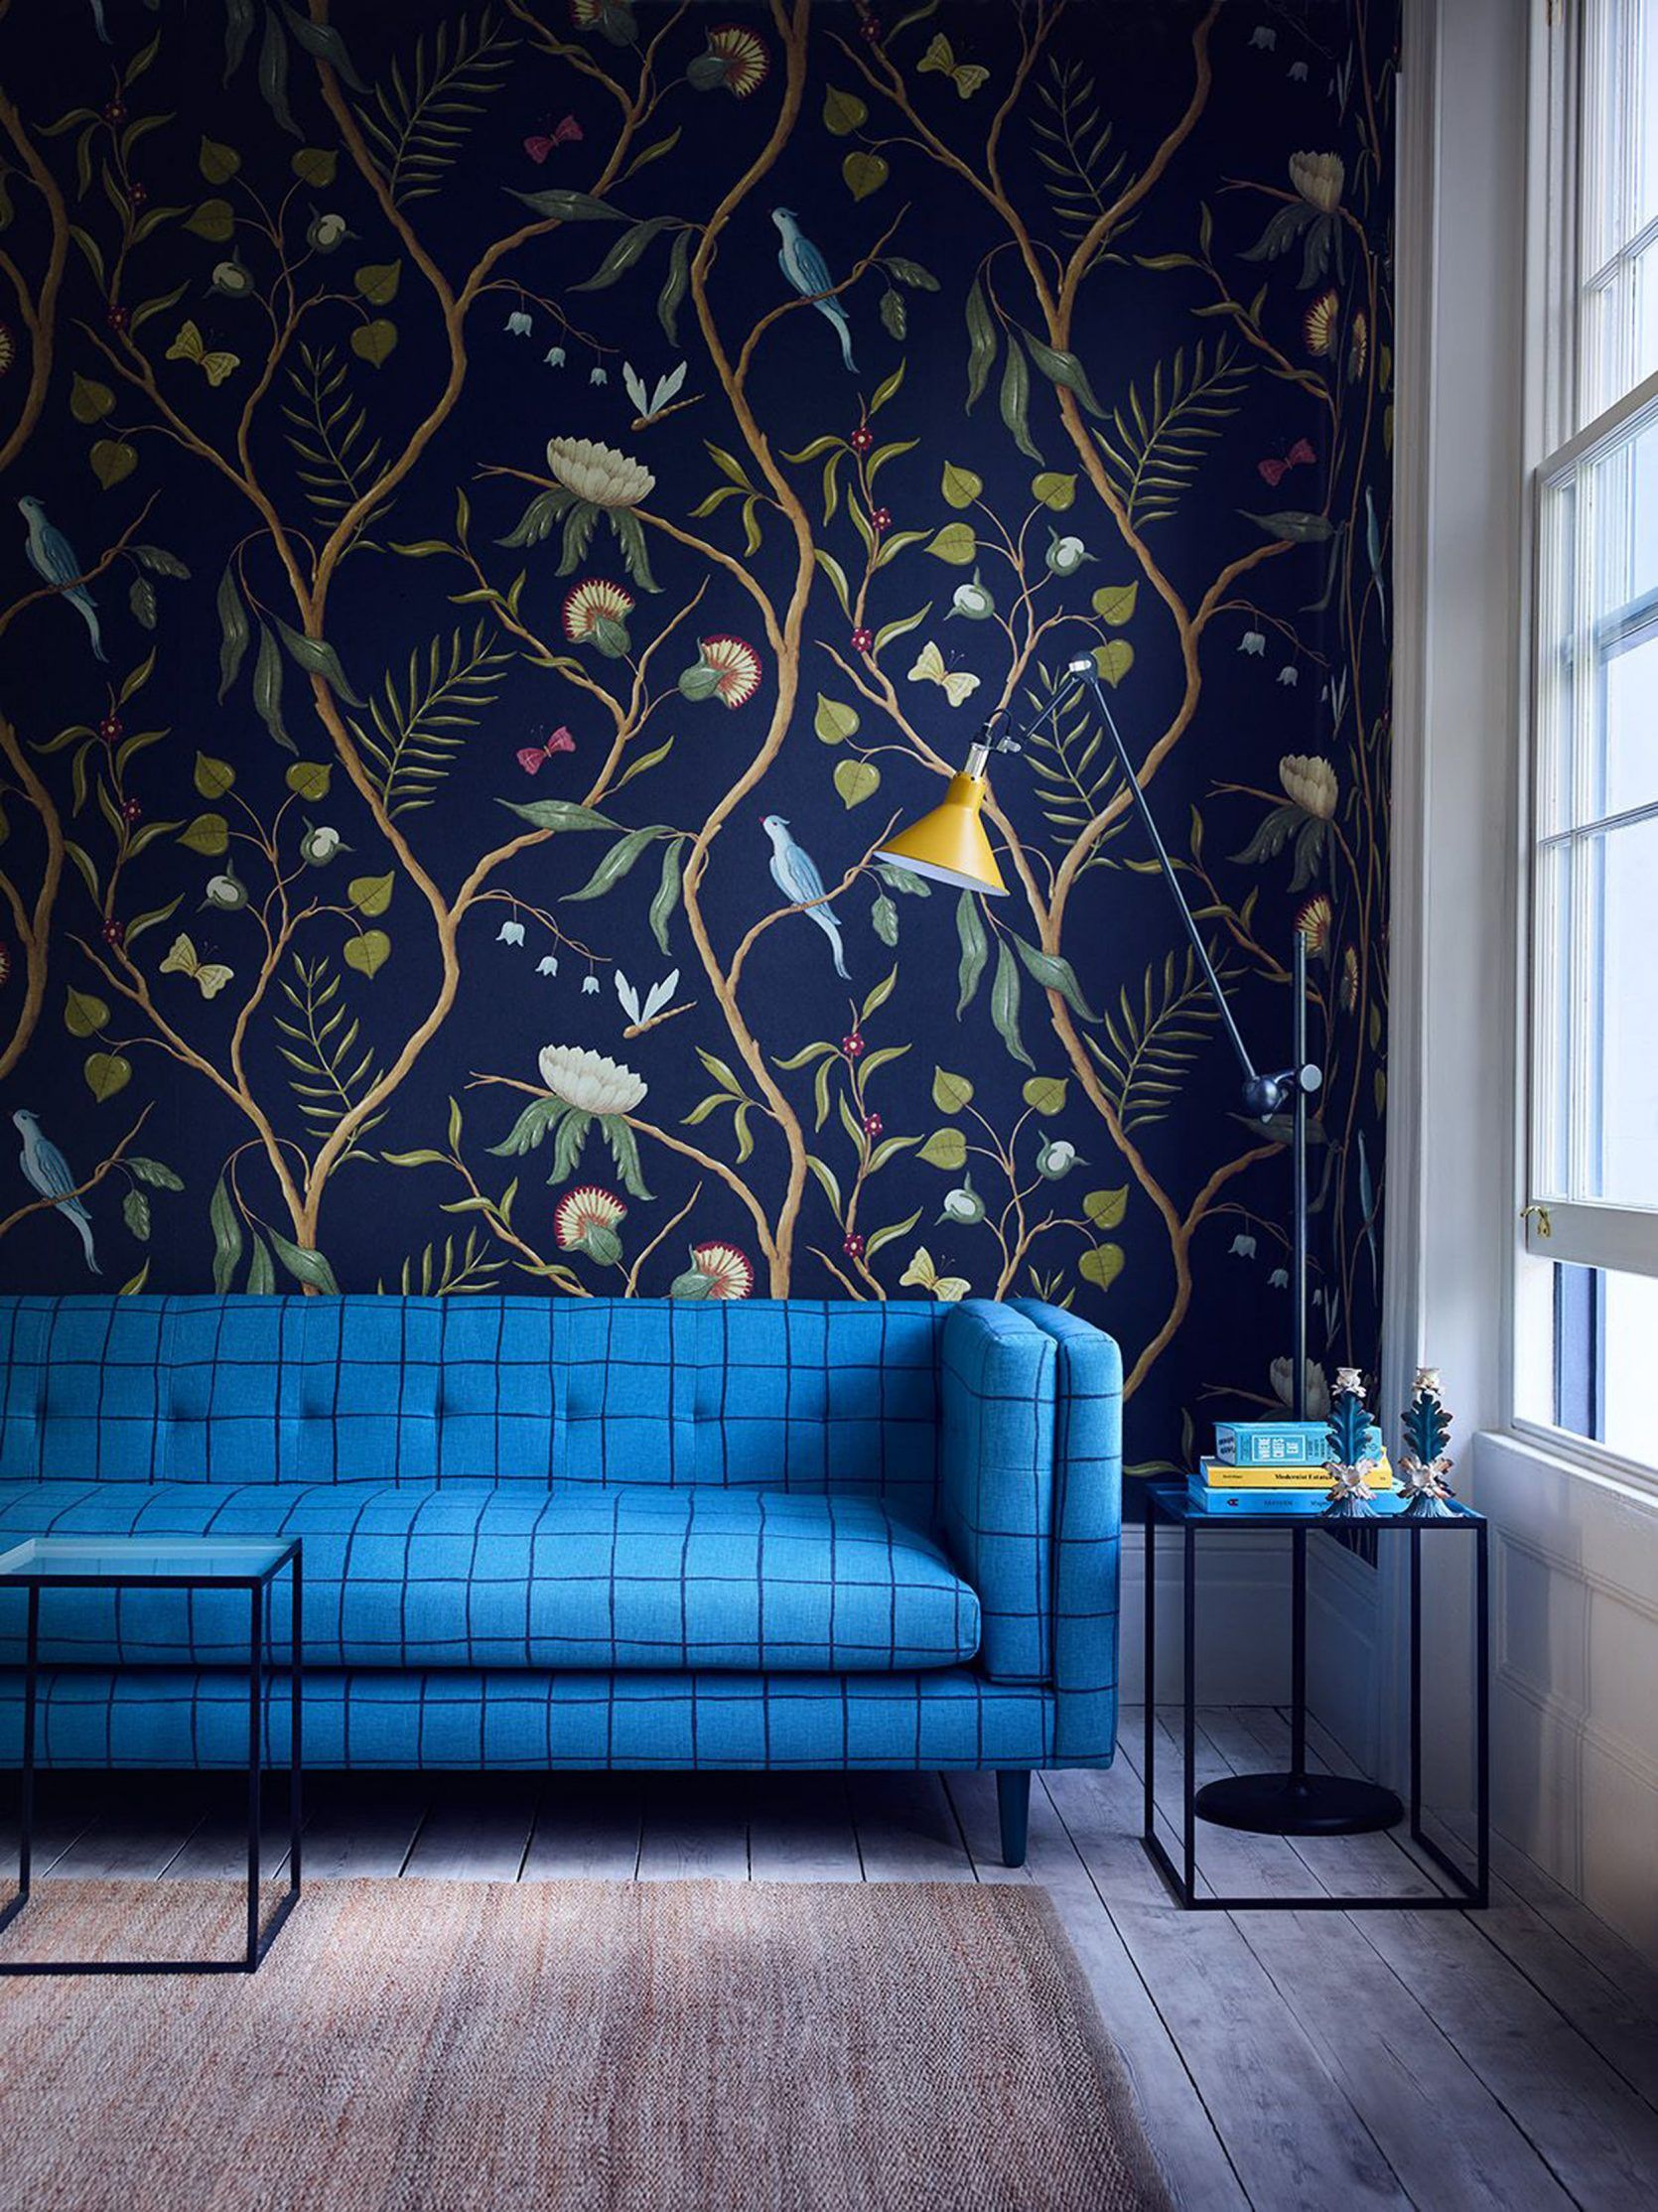 2018 Design Trends Chinoiserie Is Making A Comeback Wallpaper Living Room Home Wallpaper Room Wallpaper